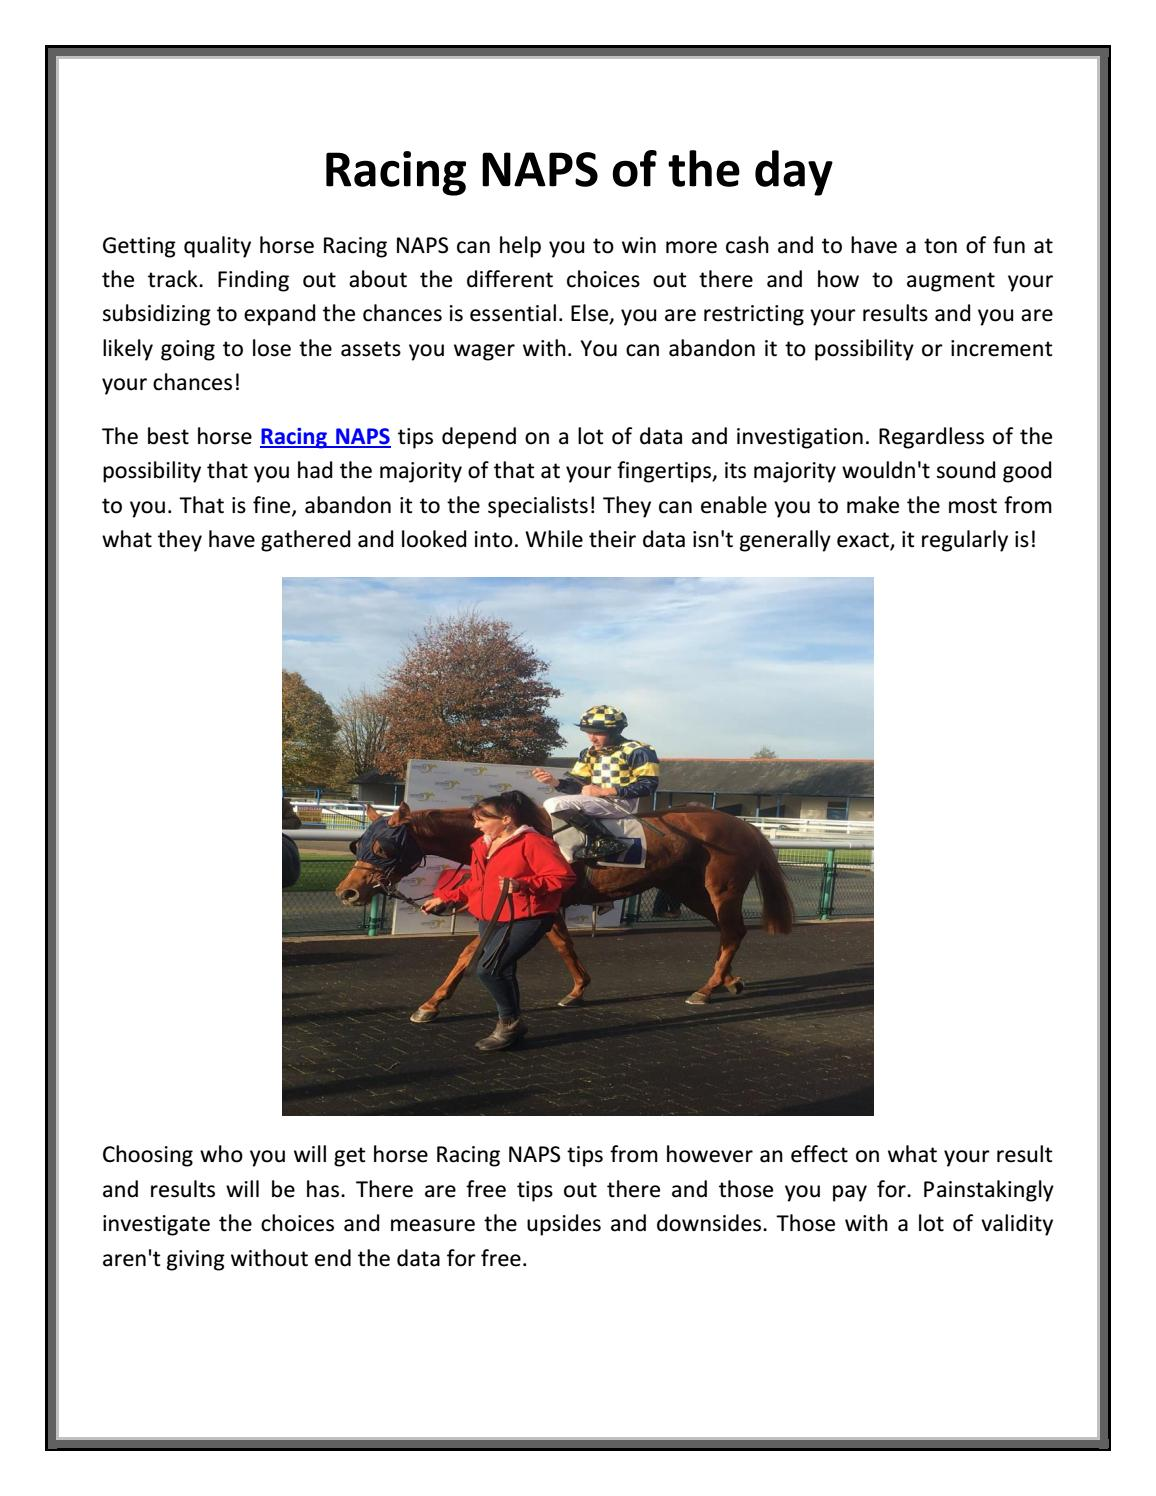 Racing naps of the day by Chasing Profit - issuu